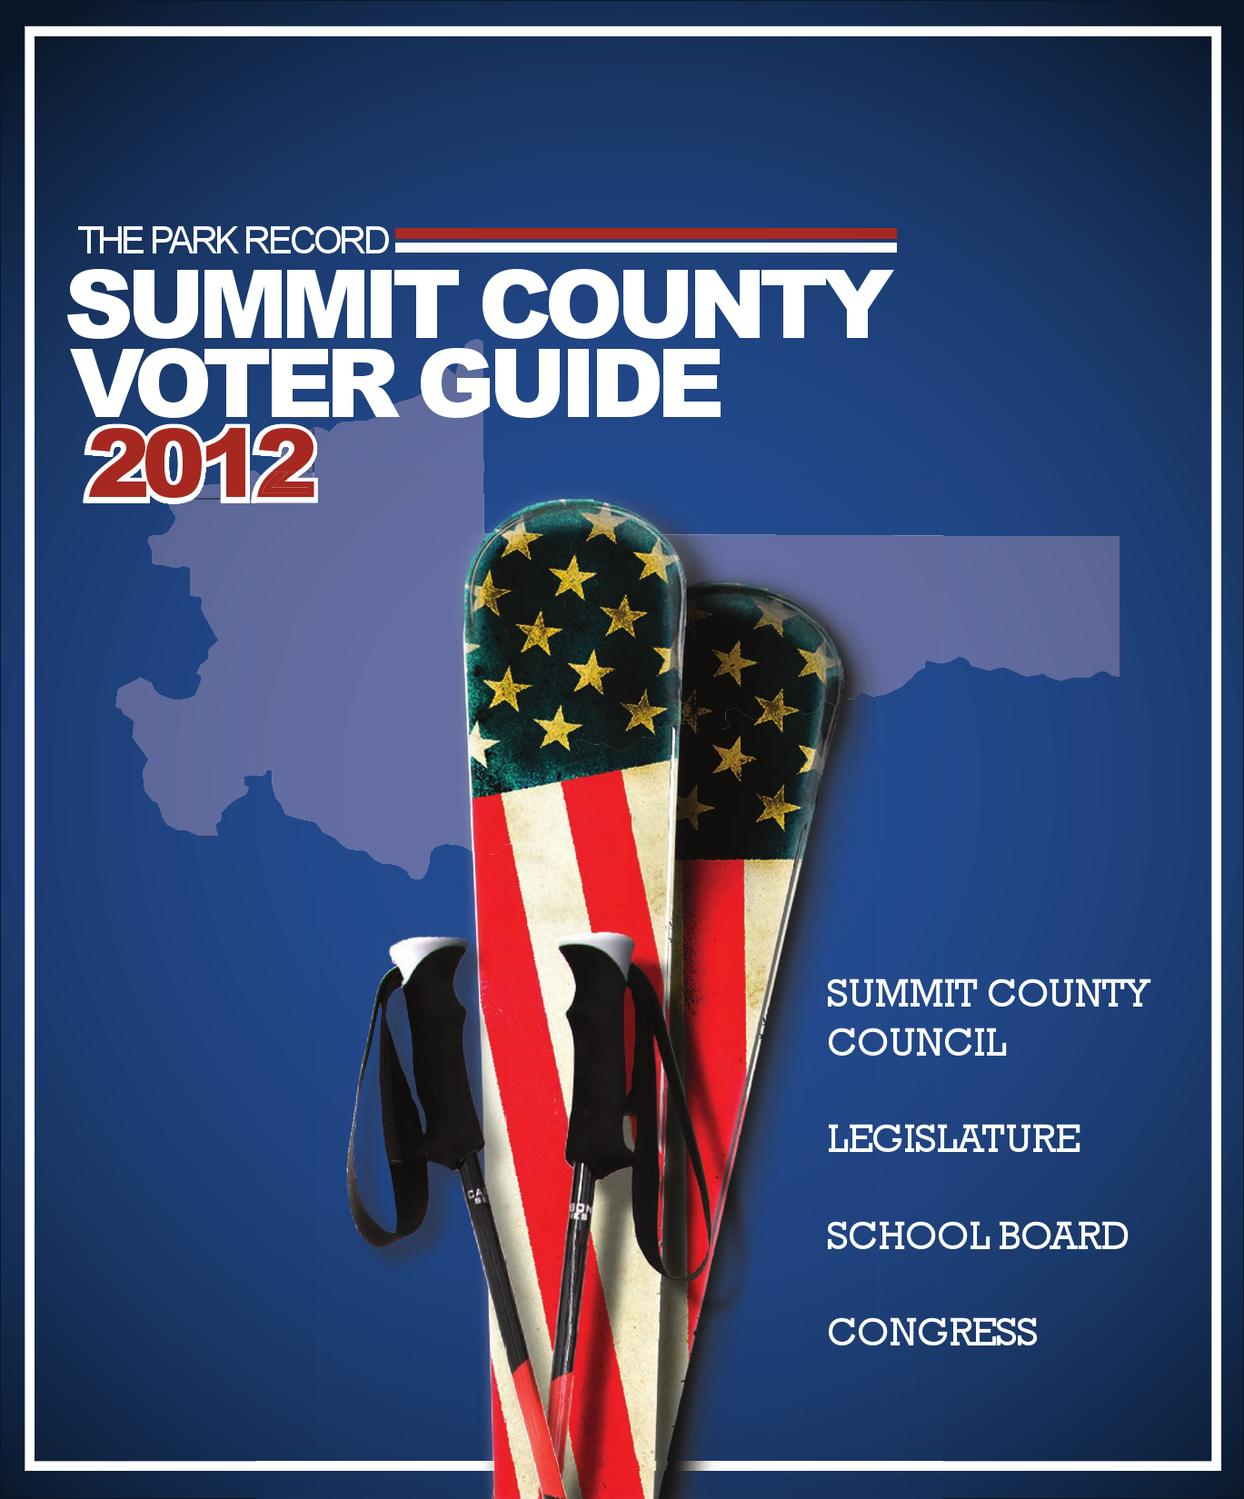 Oakley Store In Park Meadows Mall: Voter Guide Special Section By Sara Sturgis